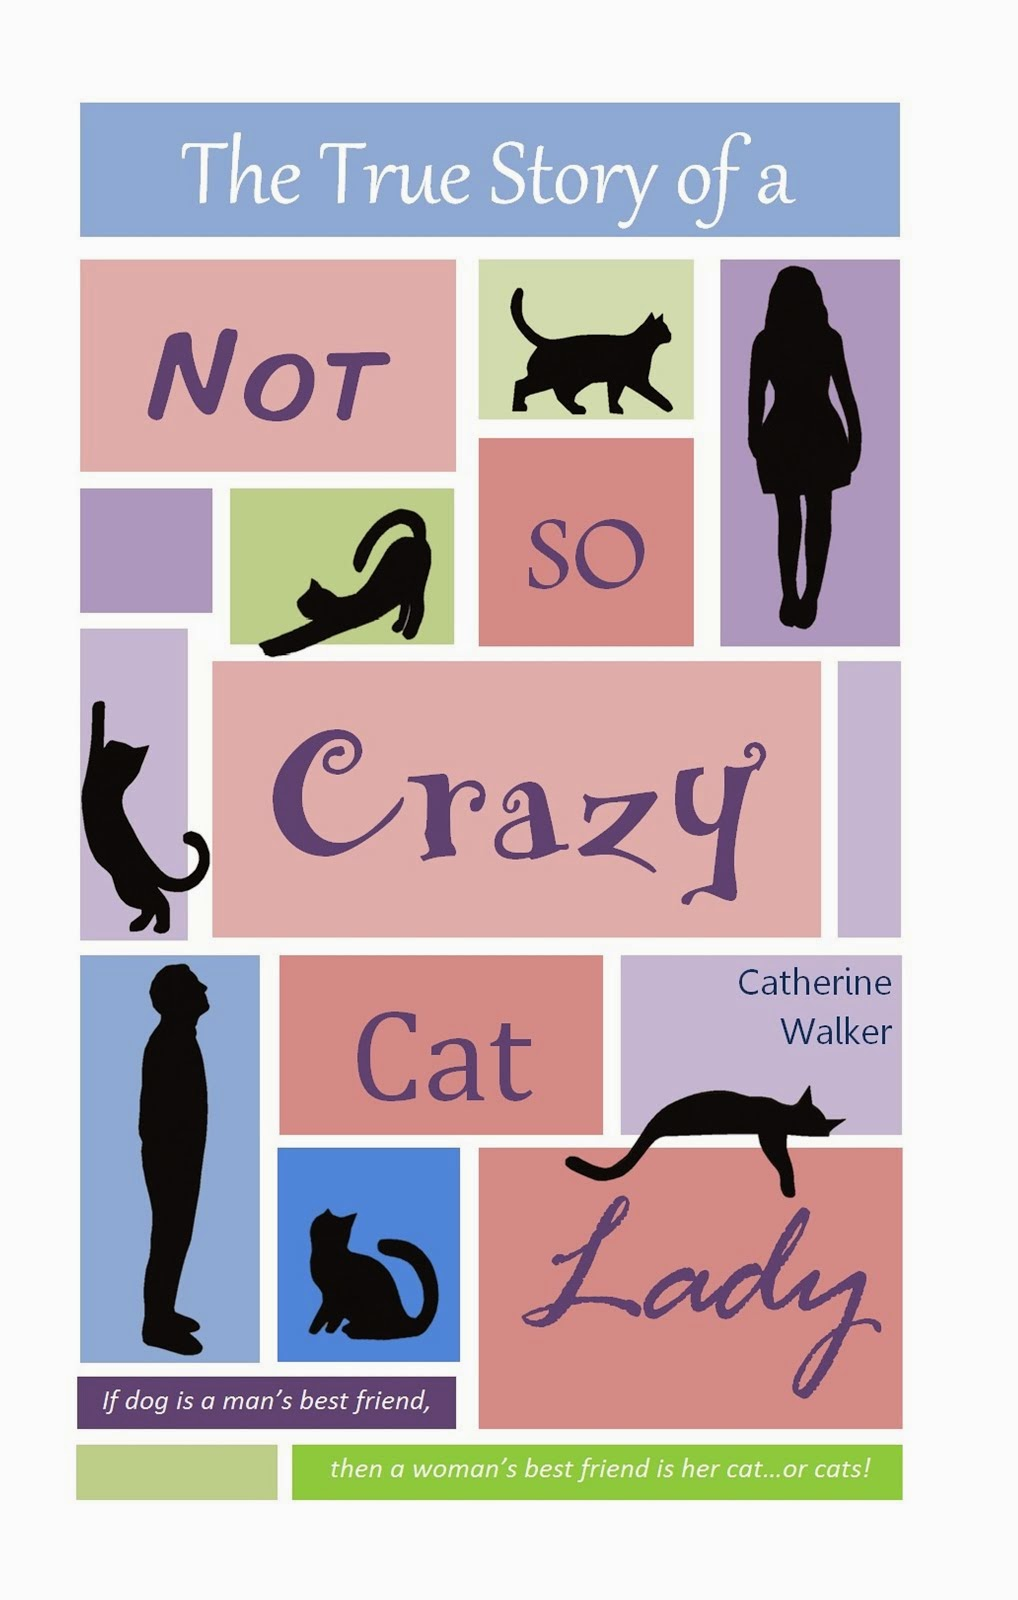 The True Story of a Not So Crazy Cat Lady